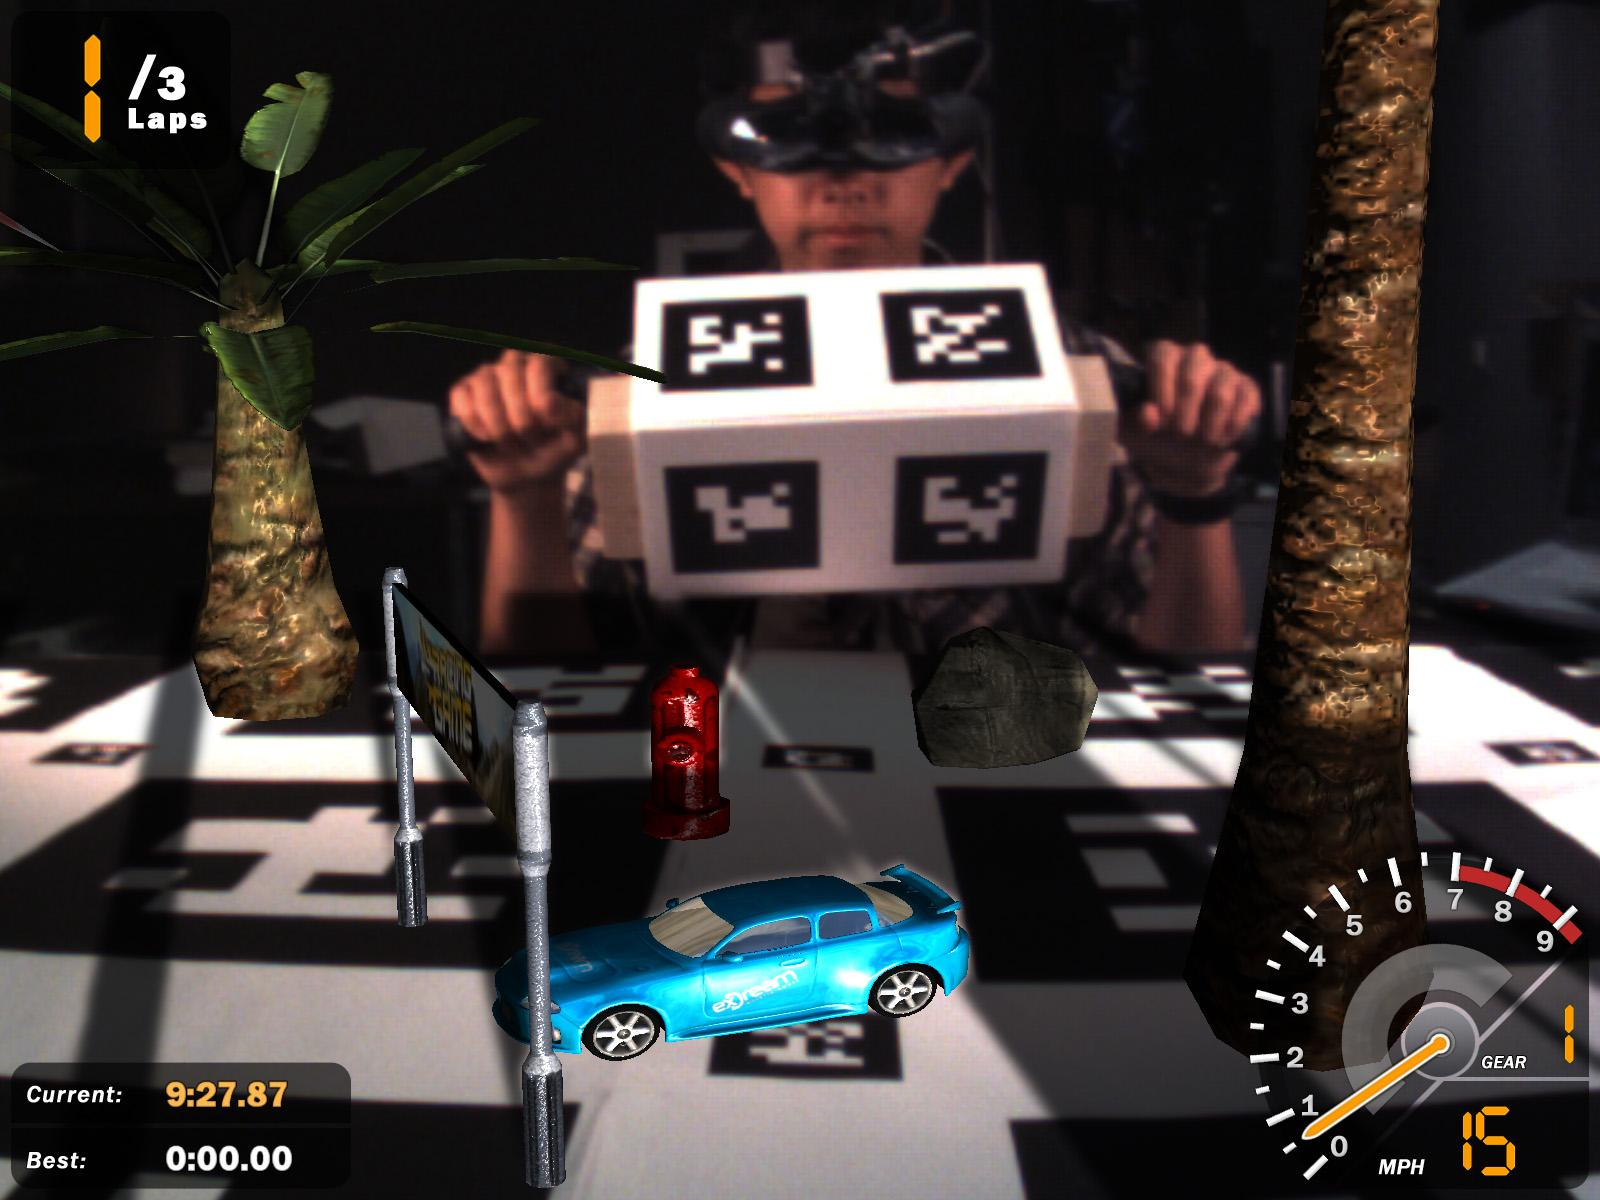 XNA Racing Game screenshot showing player holding driving controller with overlaid virtual objects on physical gameboard